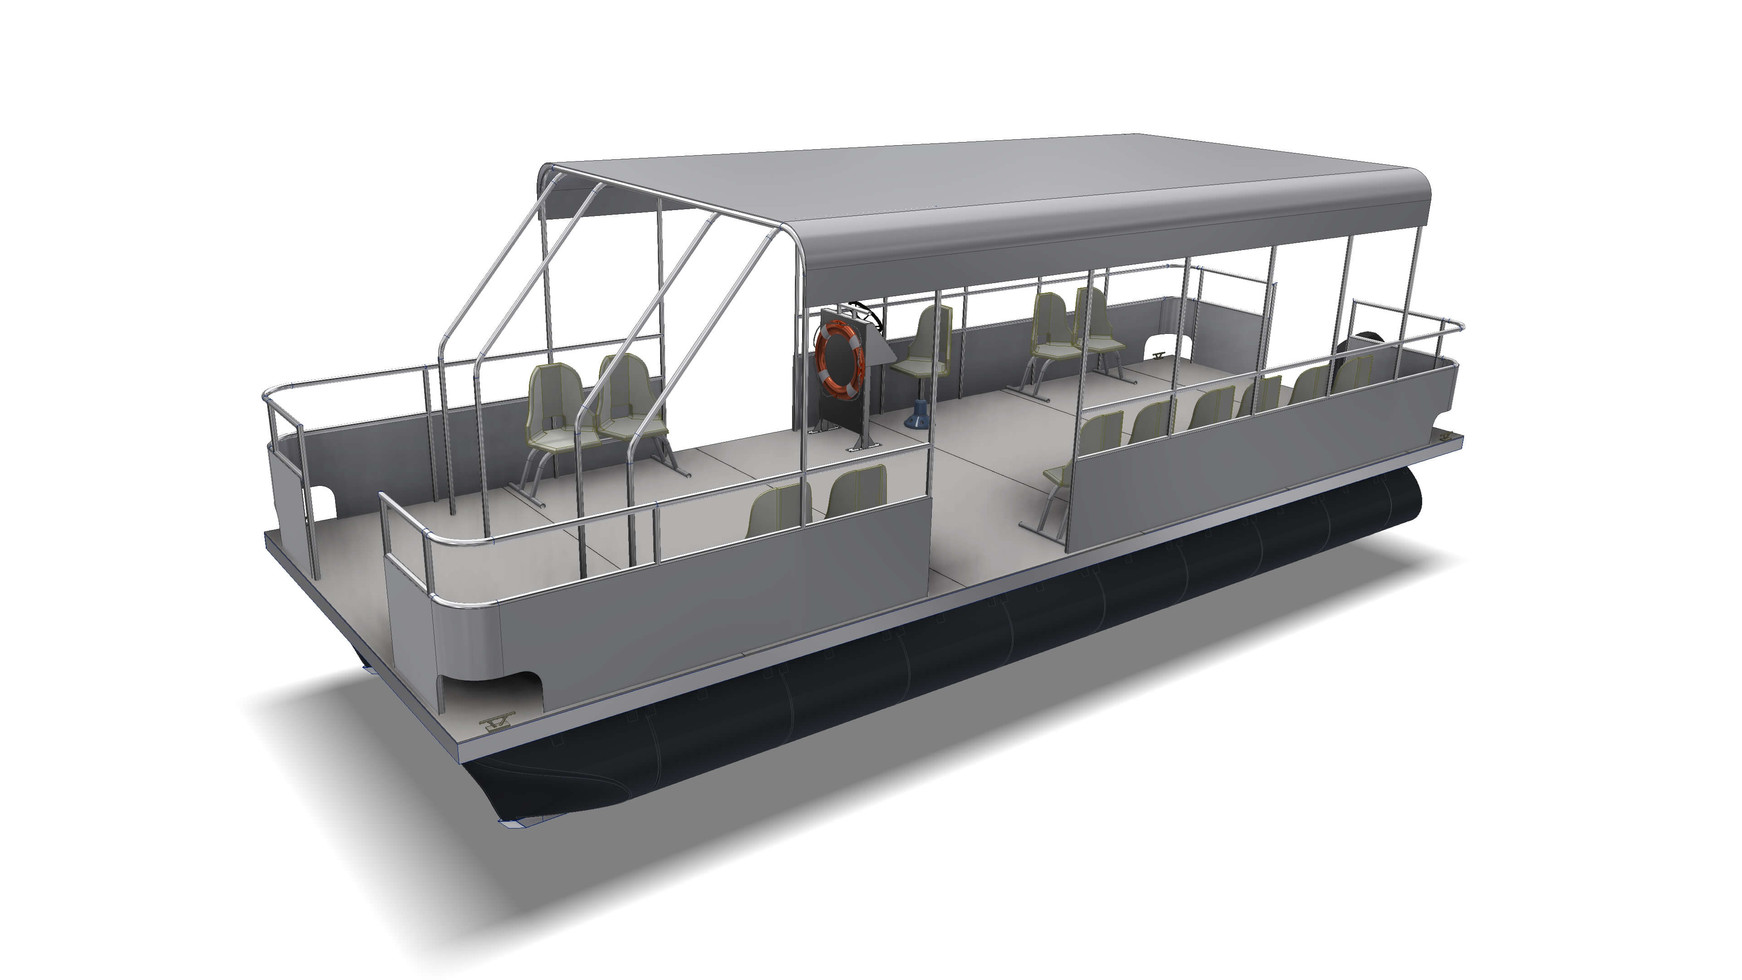 Small ferry